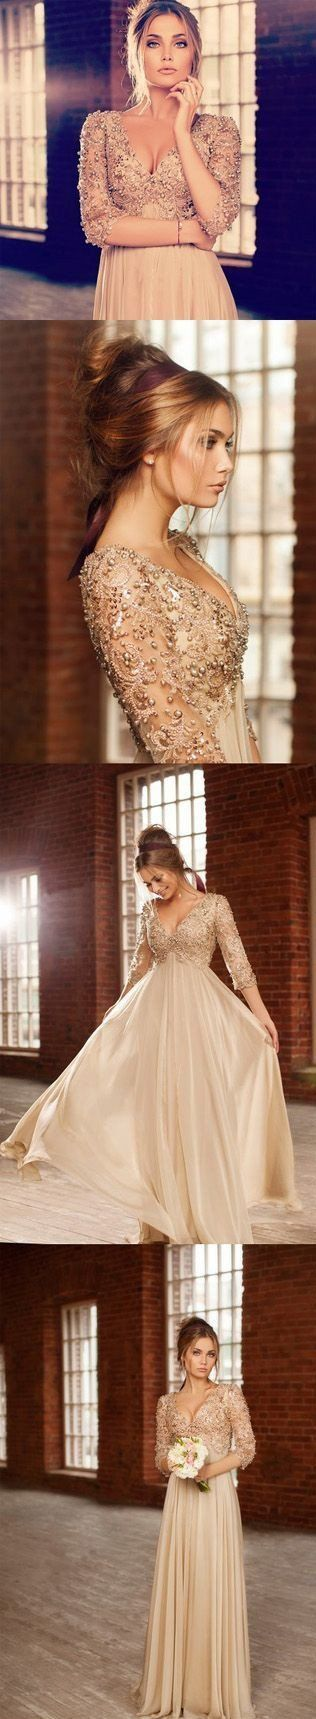 Evening Dress,Sparkly Party Dress,Crystals Prom Gown With Long Sleeves ,Pearl Wedding Gowns,Beaded Evening Dress,Champagne Prom Dress,Prom For Prom 2016,